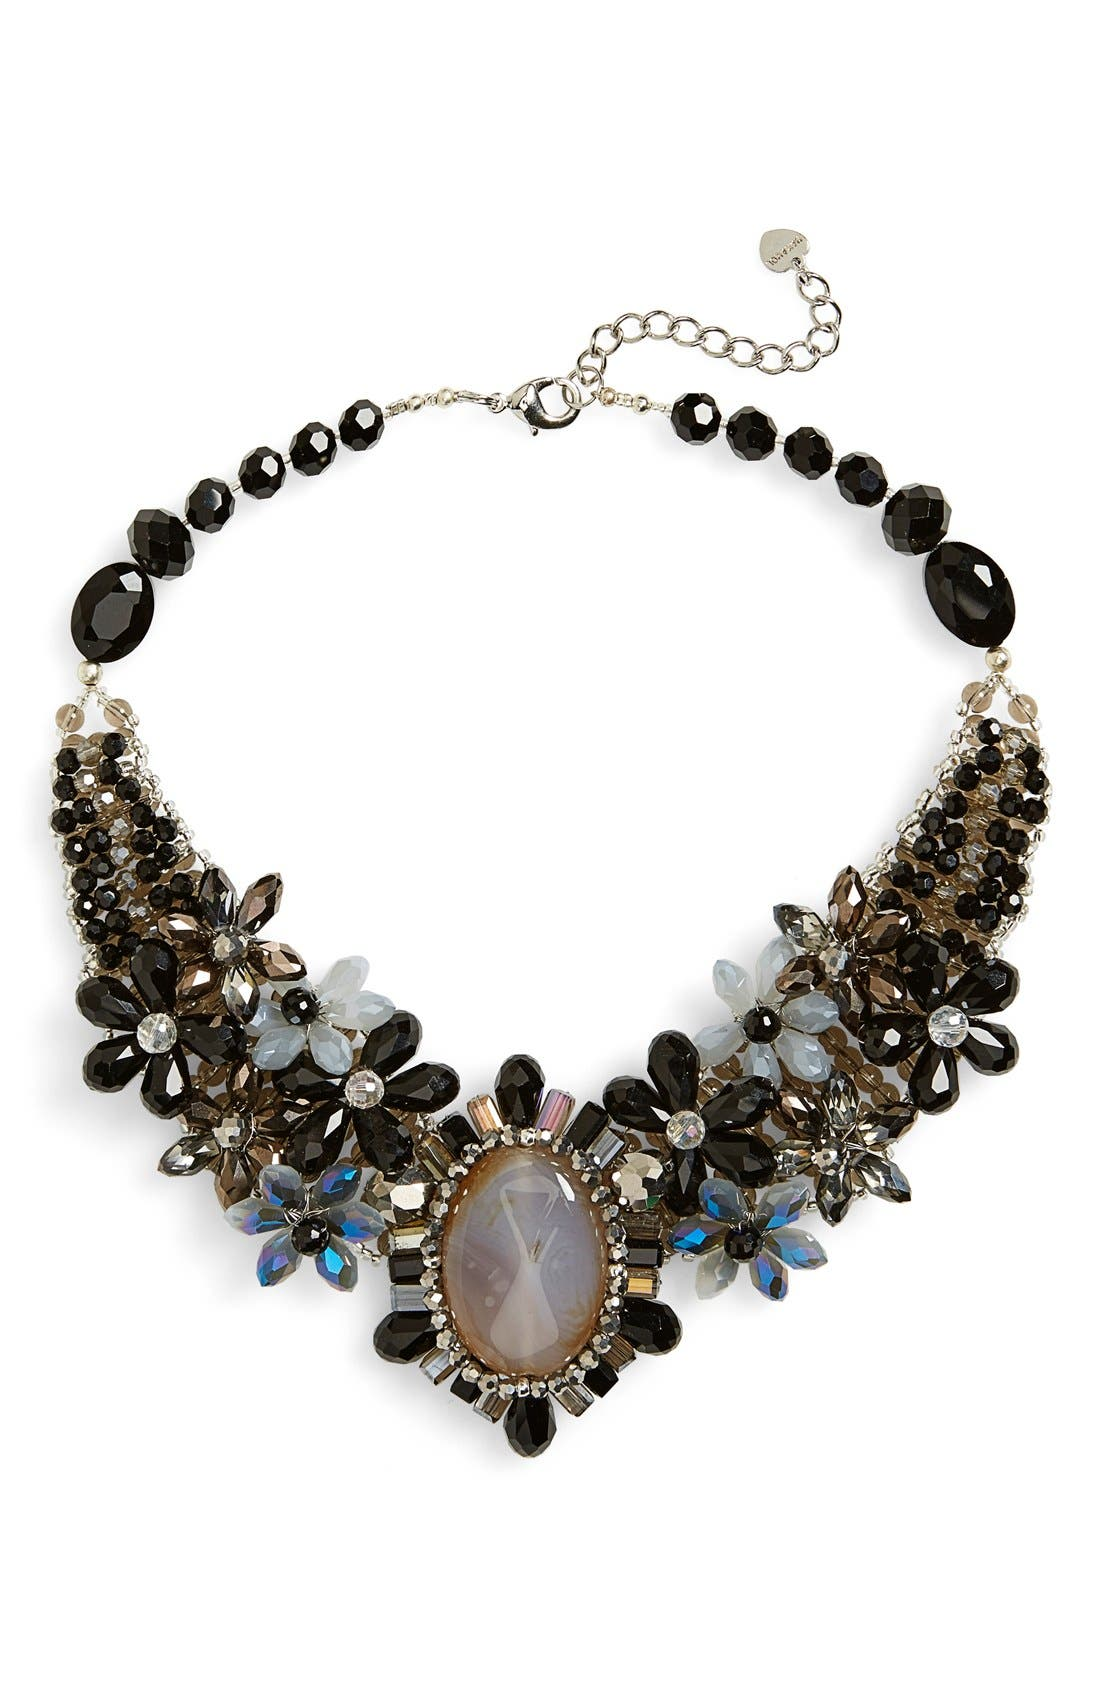 Main Image - Nakamol Design 'Crystal Stone Flower' Collar Necklace